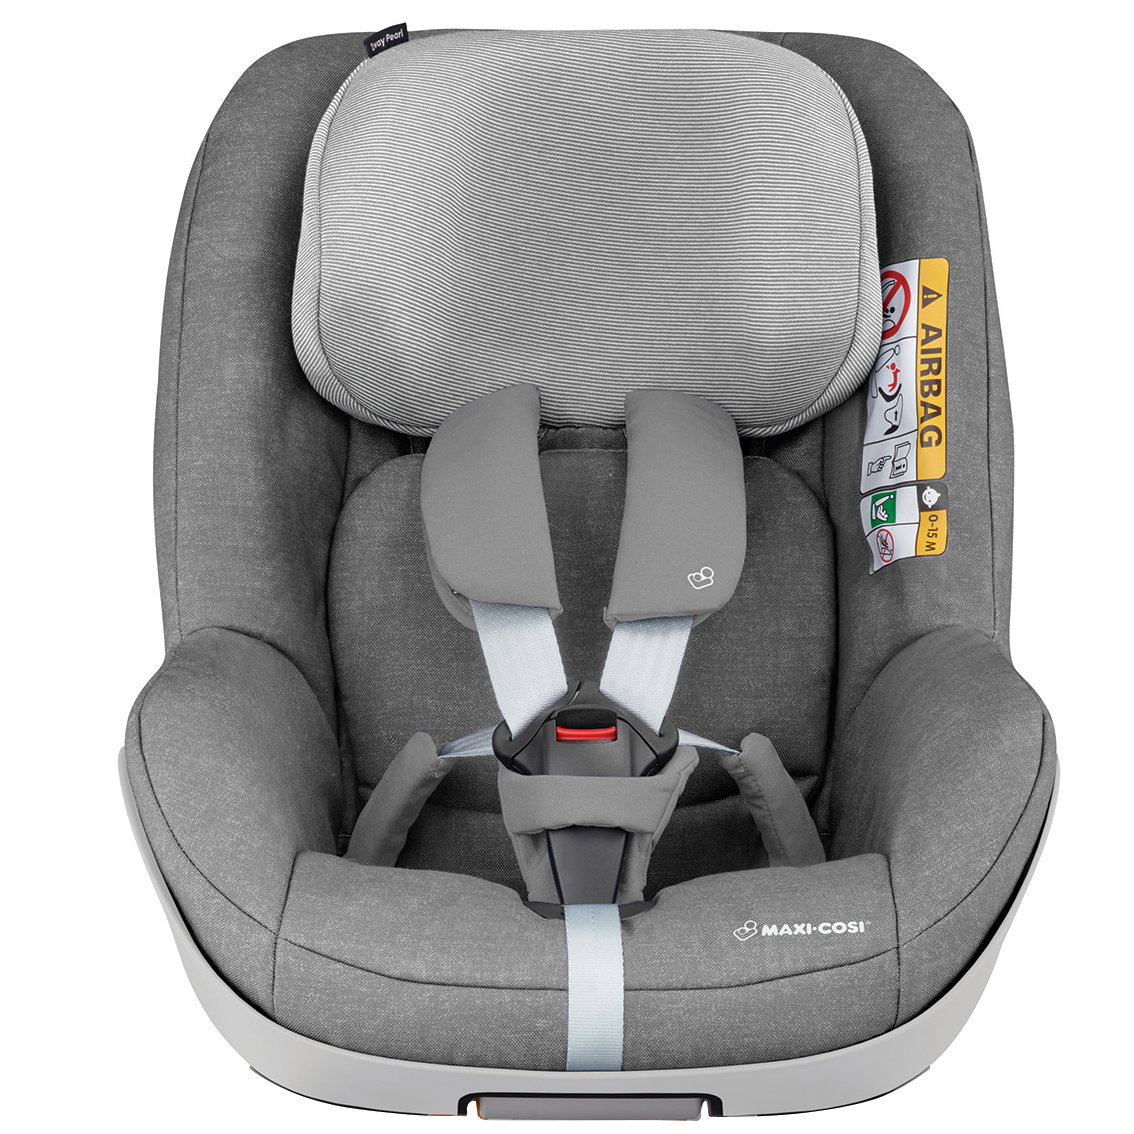 maxi cosi child car seat 2way pearl 2018 nomad grey buy at kidsroom car seats. Black Bedroom Furniture Sets. Home Design Ideas